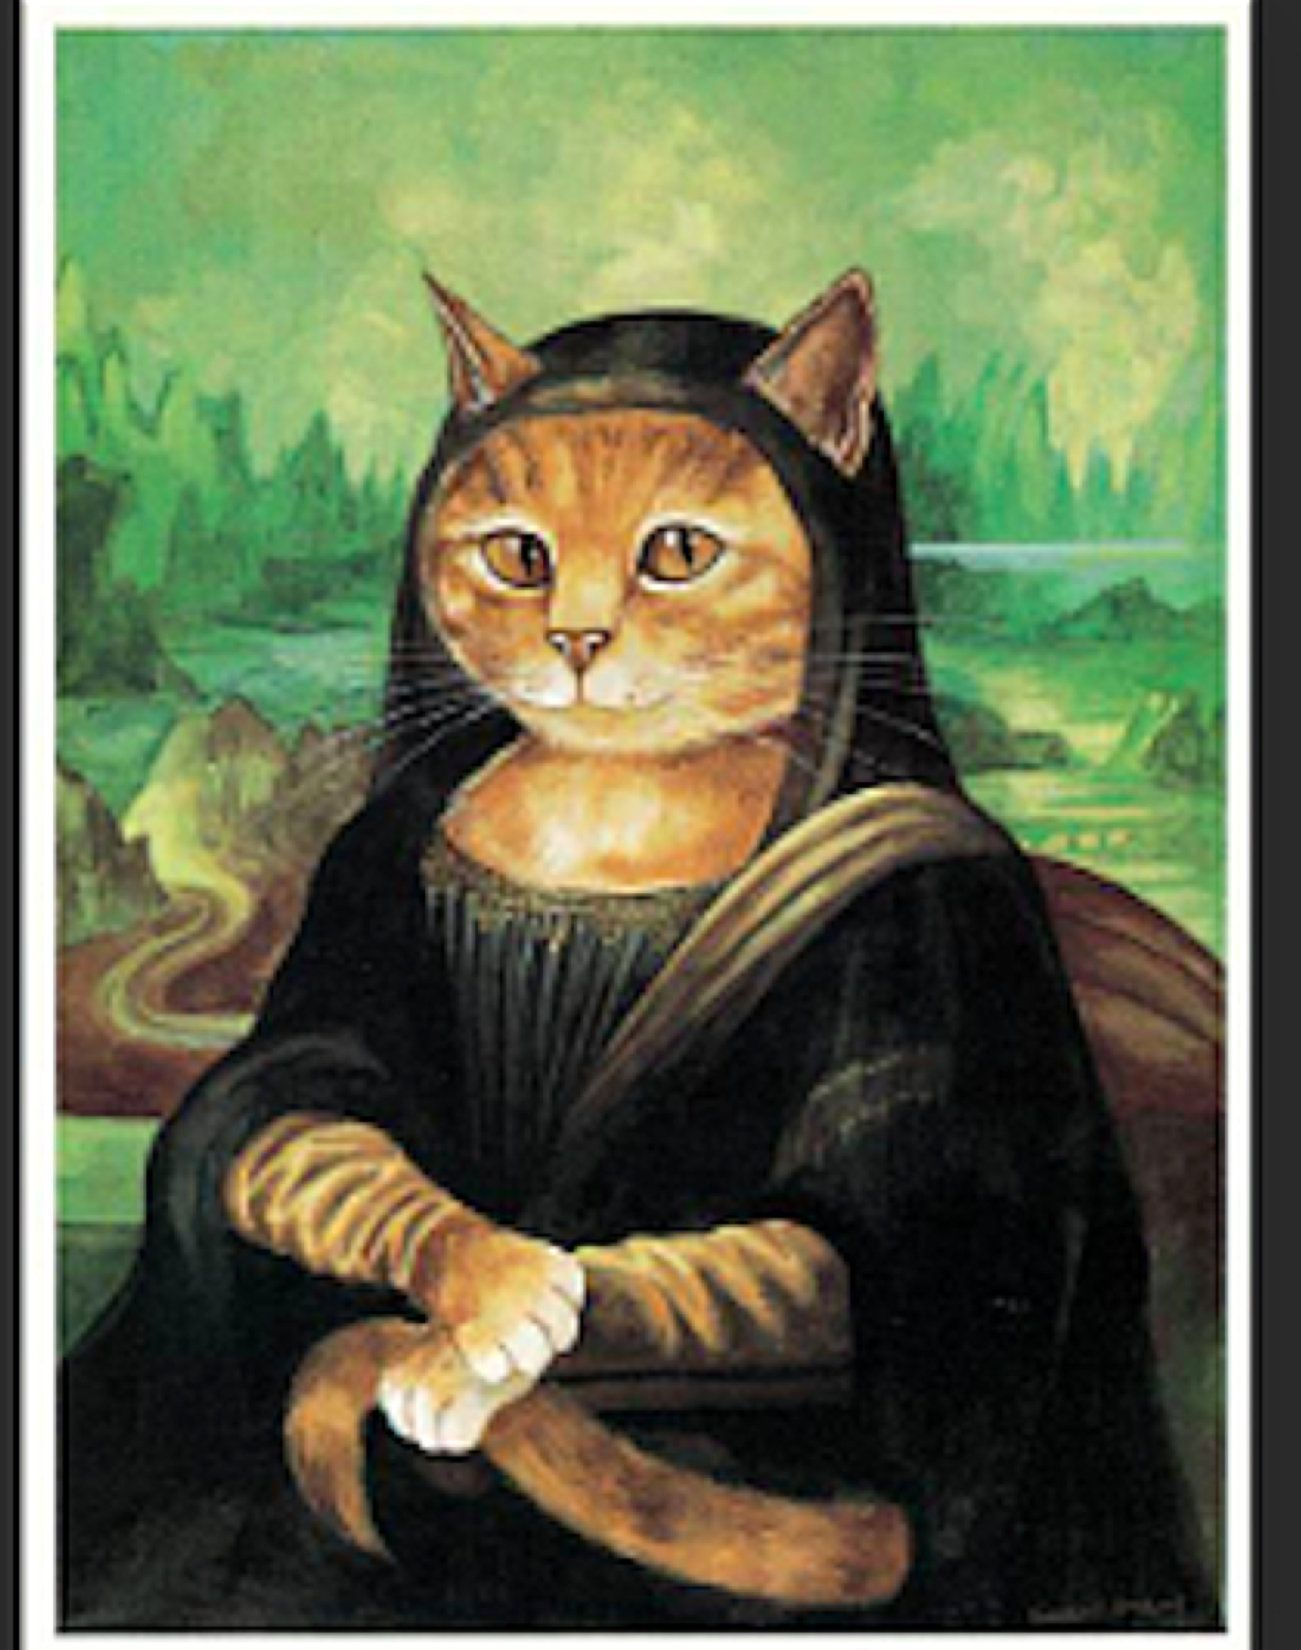 Pin By Feralartist On Animaux Drôles In 2021 Art Parody Cat Art Famous Art